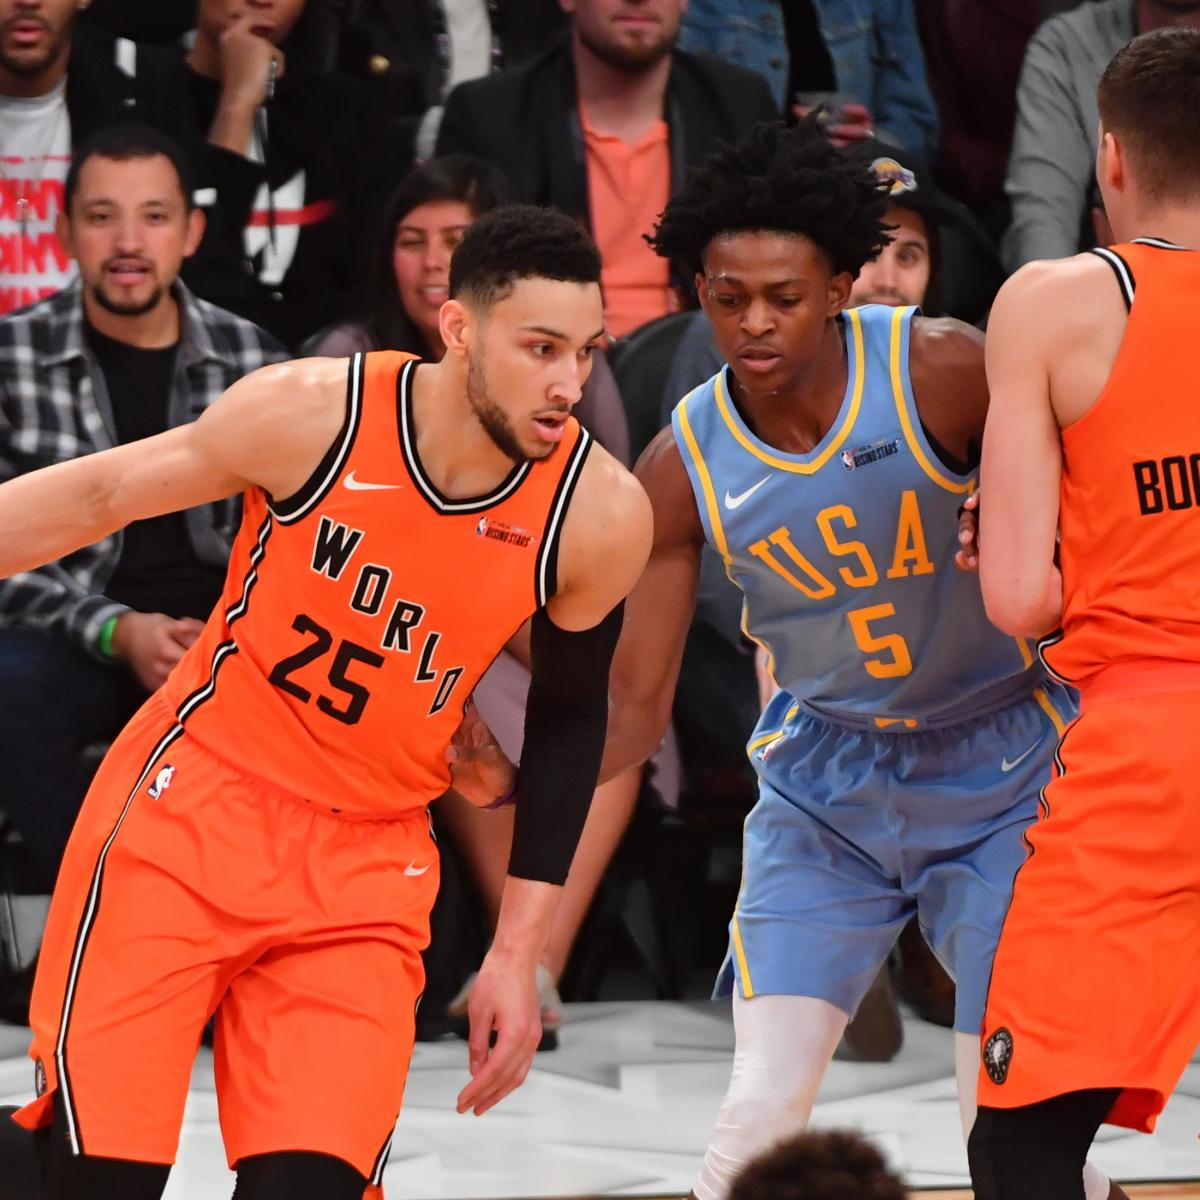 Nba Rising Stars Challenge: NBA Rising Stars Challenge 2019: Rosters, Snubs